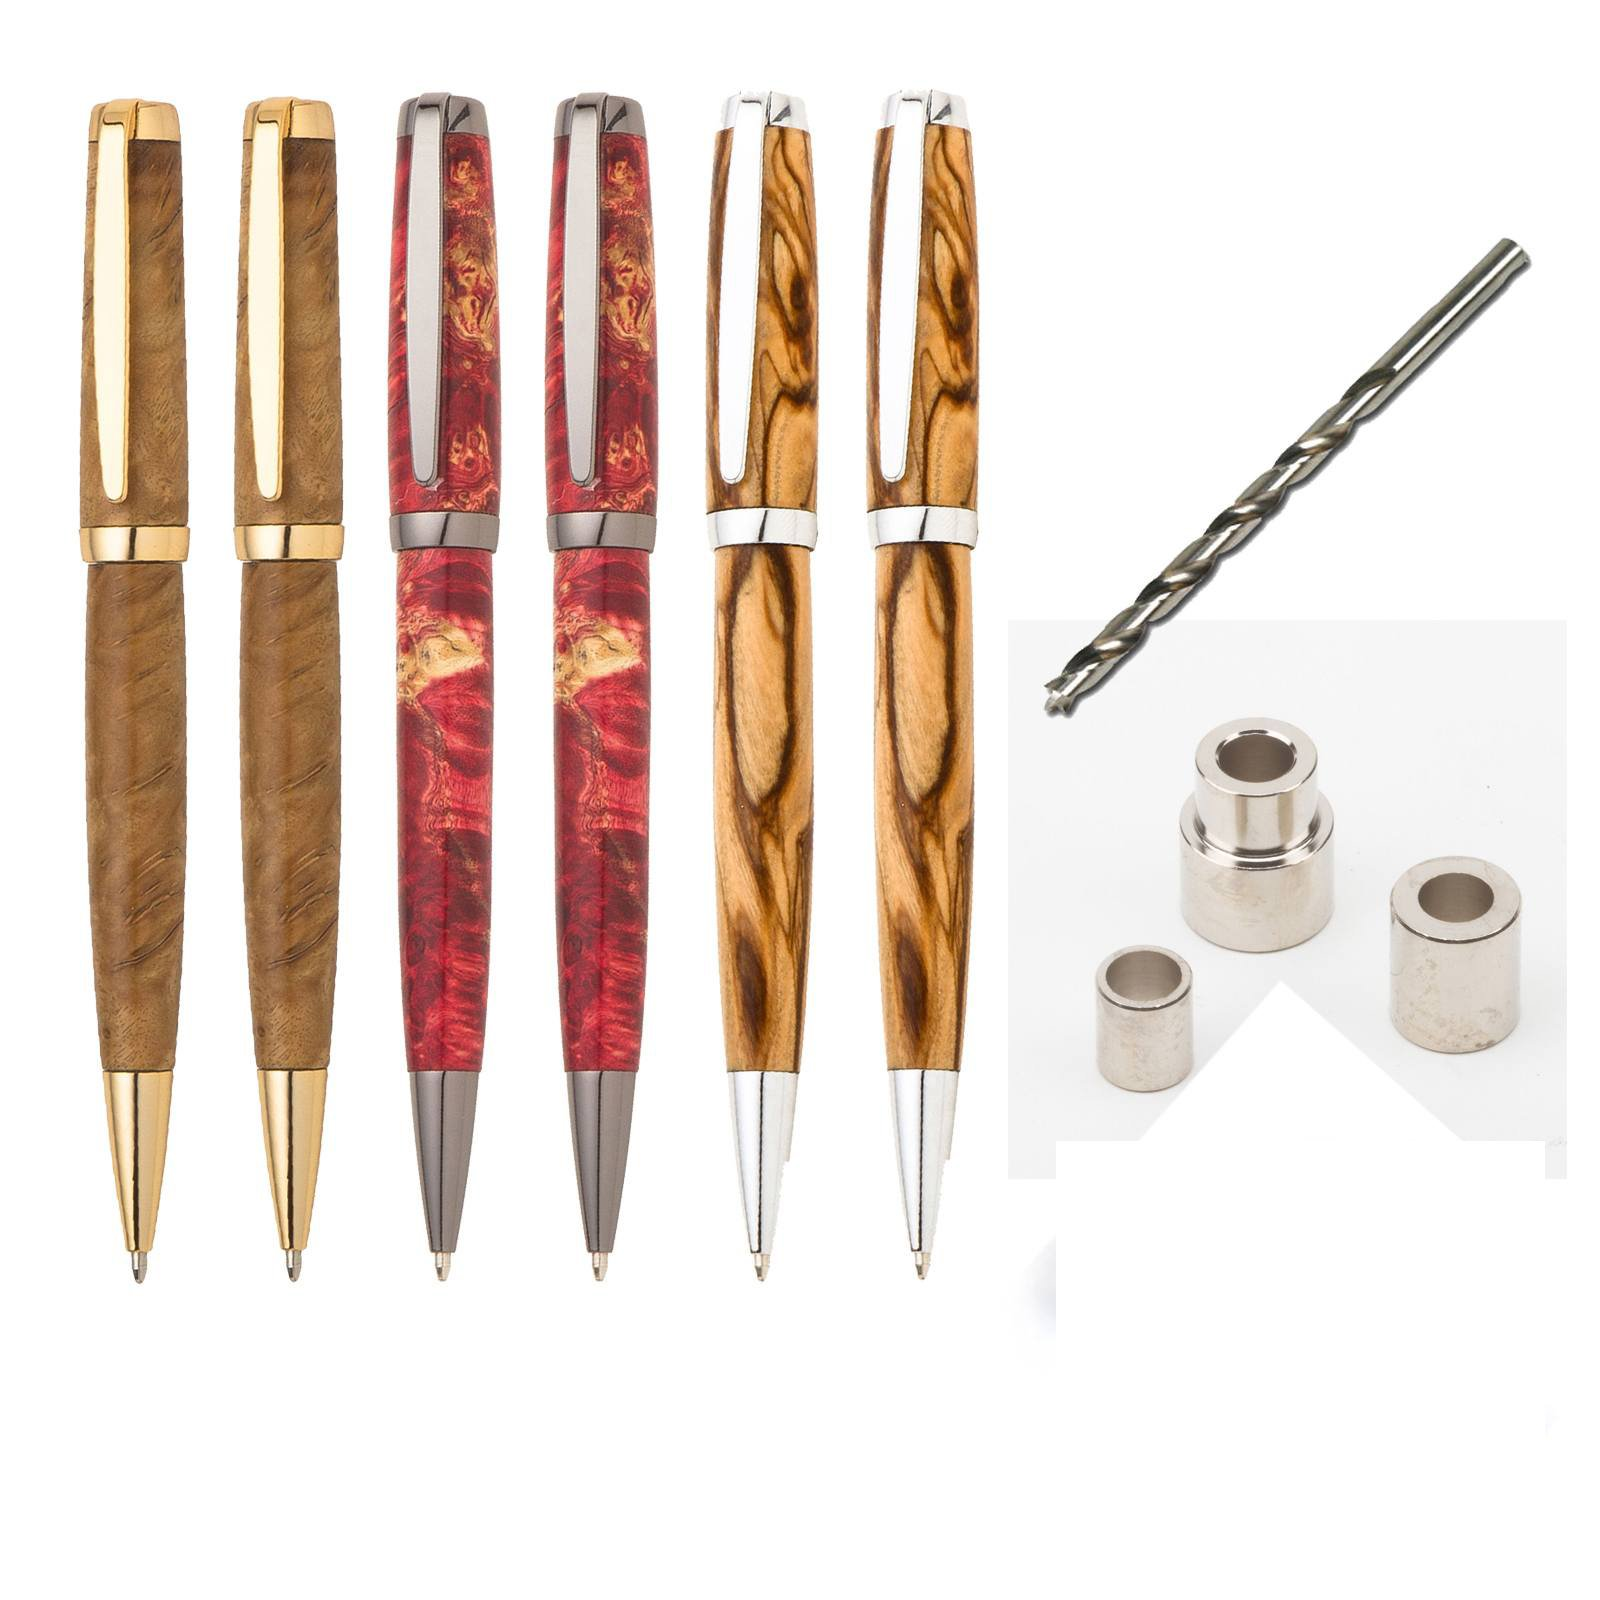 Penn State Industries PKGRADSS Graduate Twist Ballpoint Pen Kit Starter Package Woodturning Project